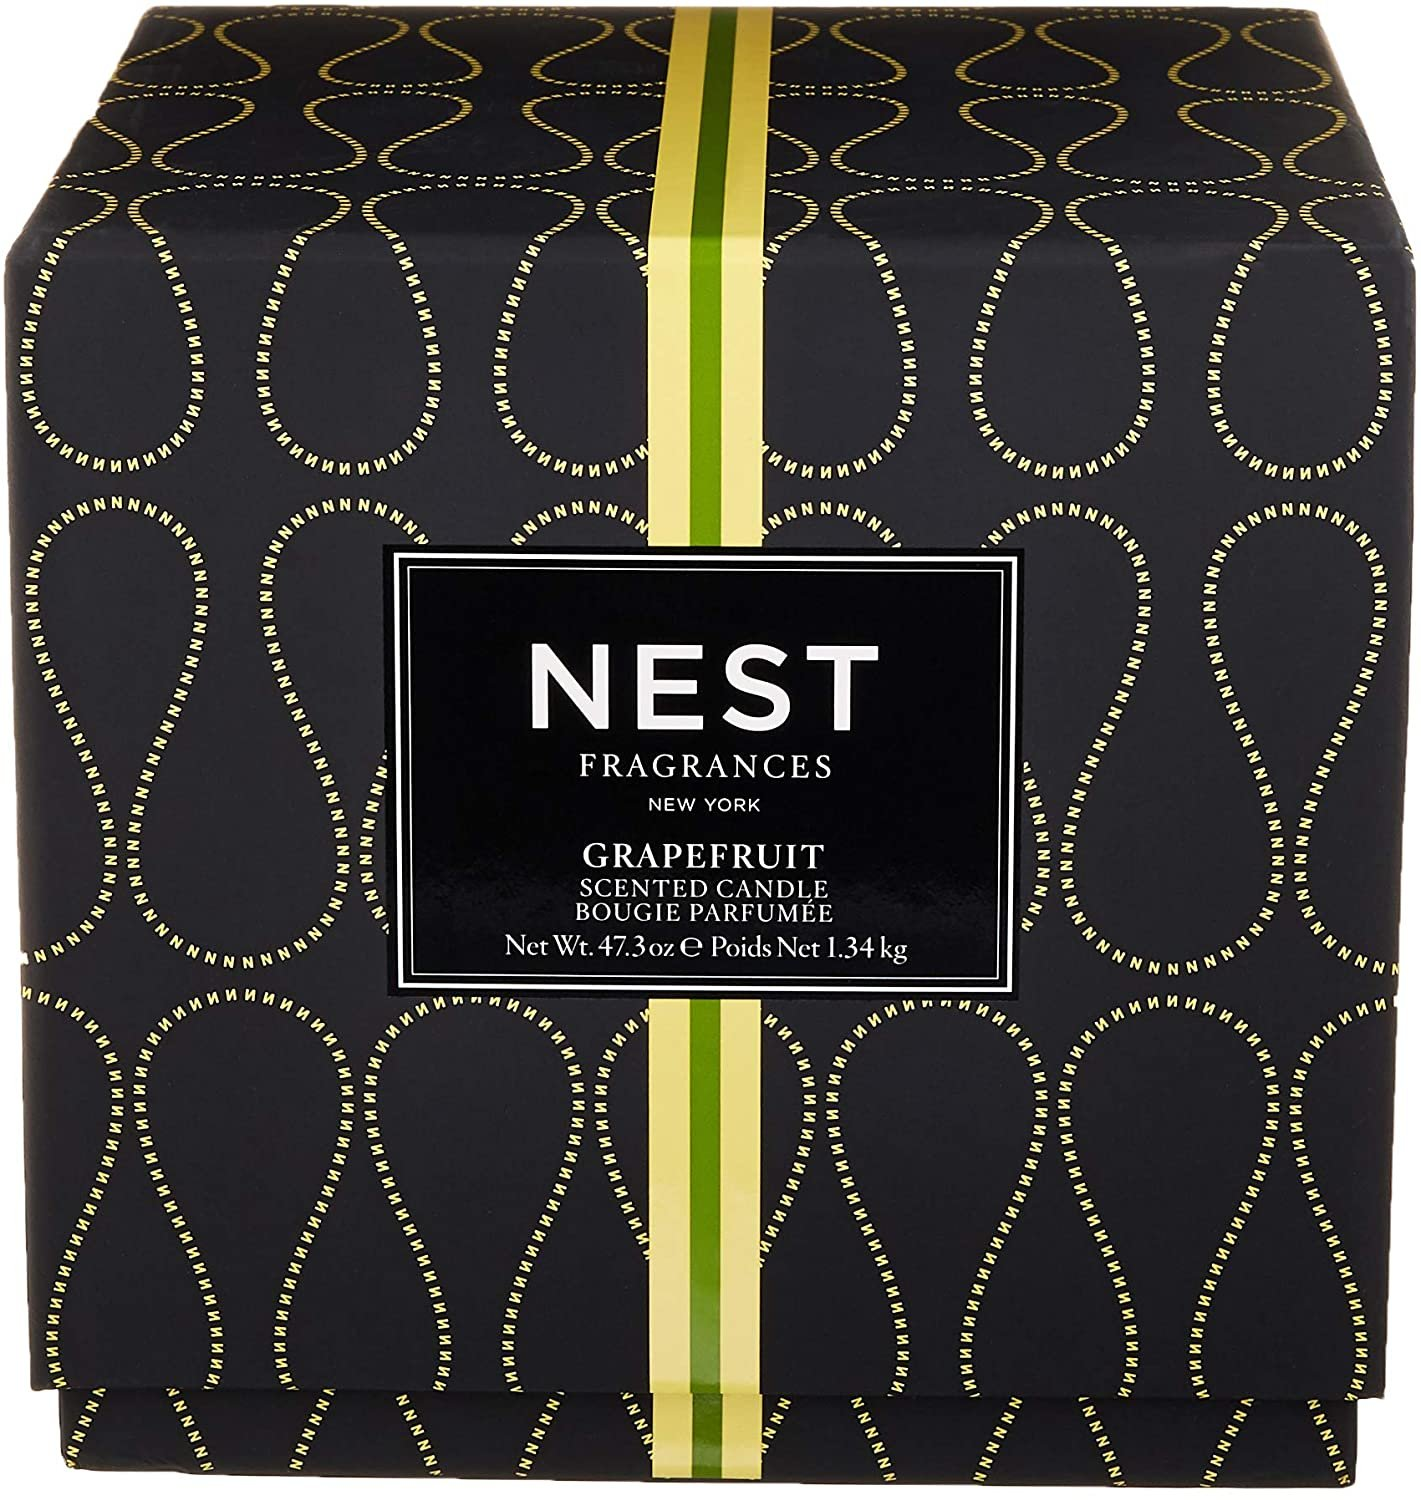 Nest Fragrances 3-Wick Candle 21.2 oz Bamboo